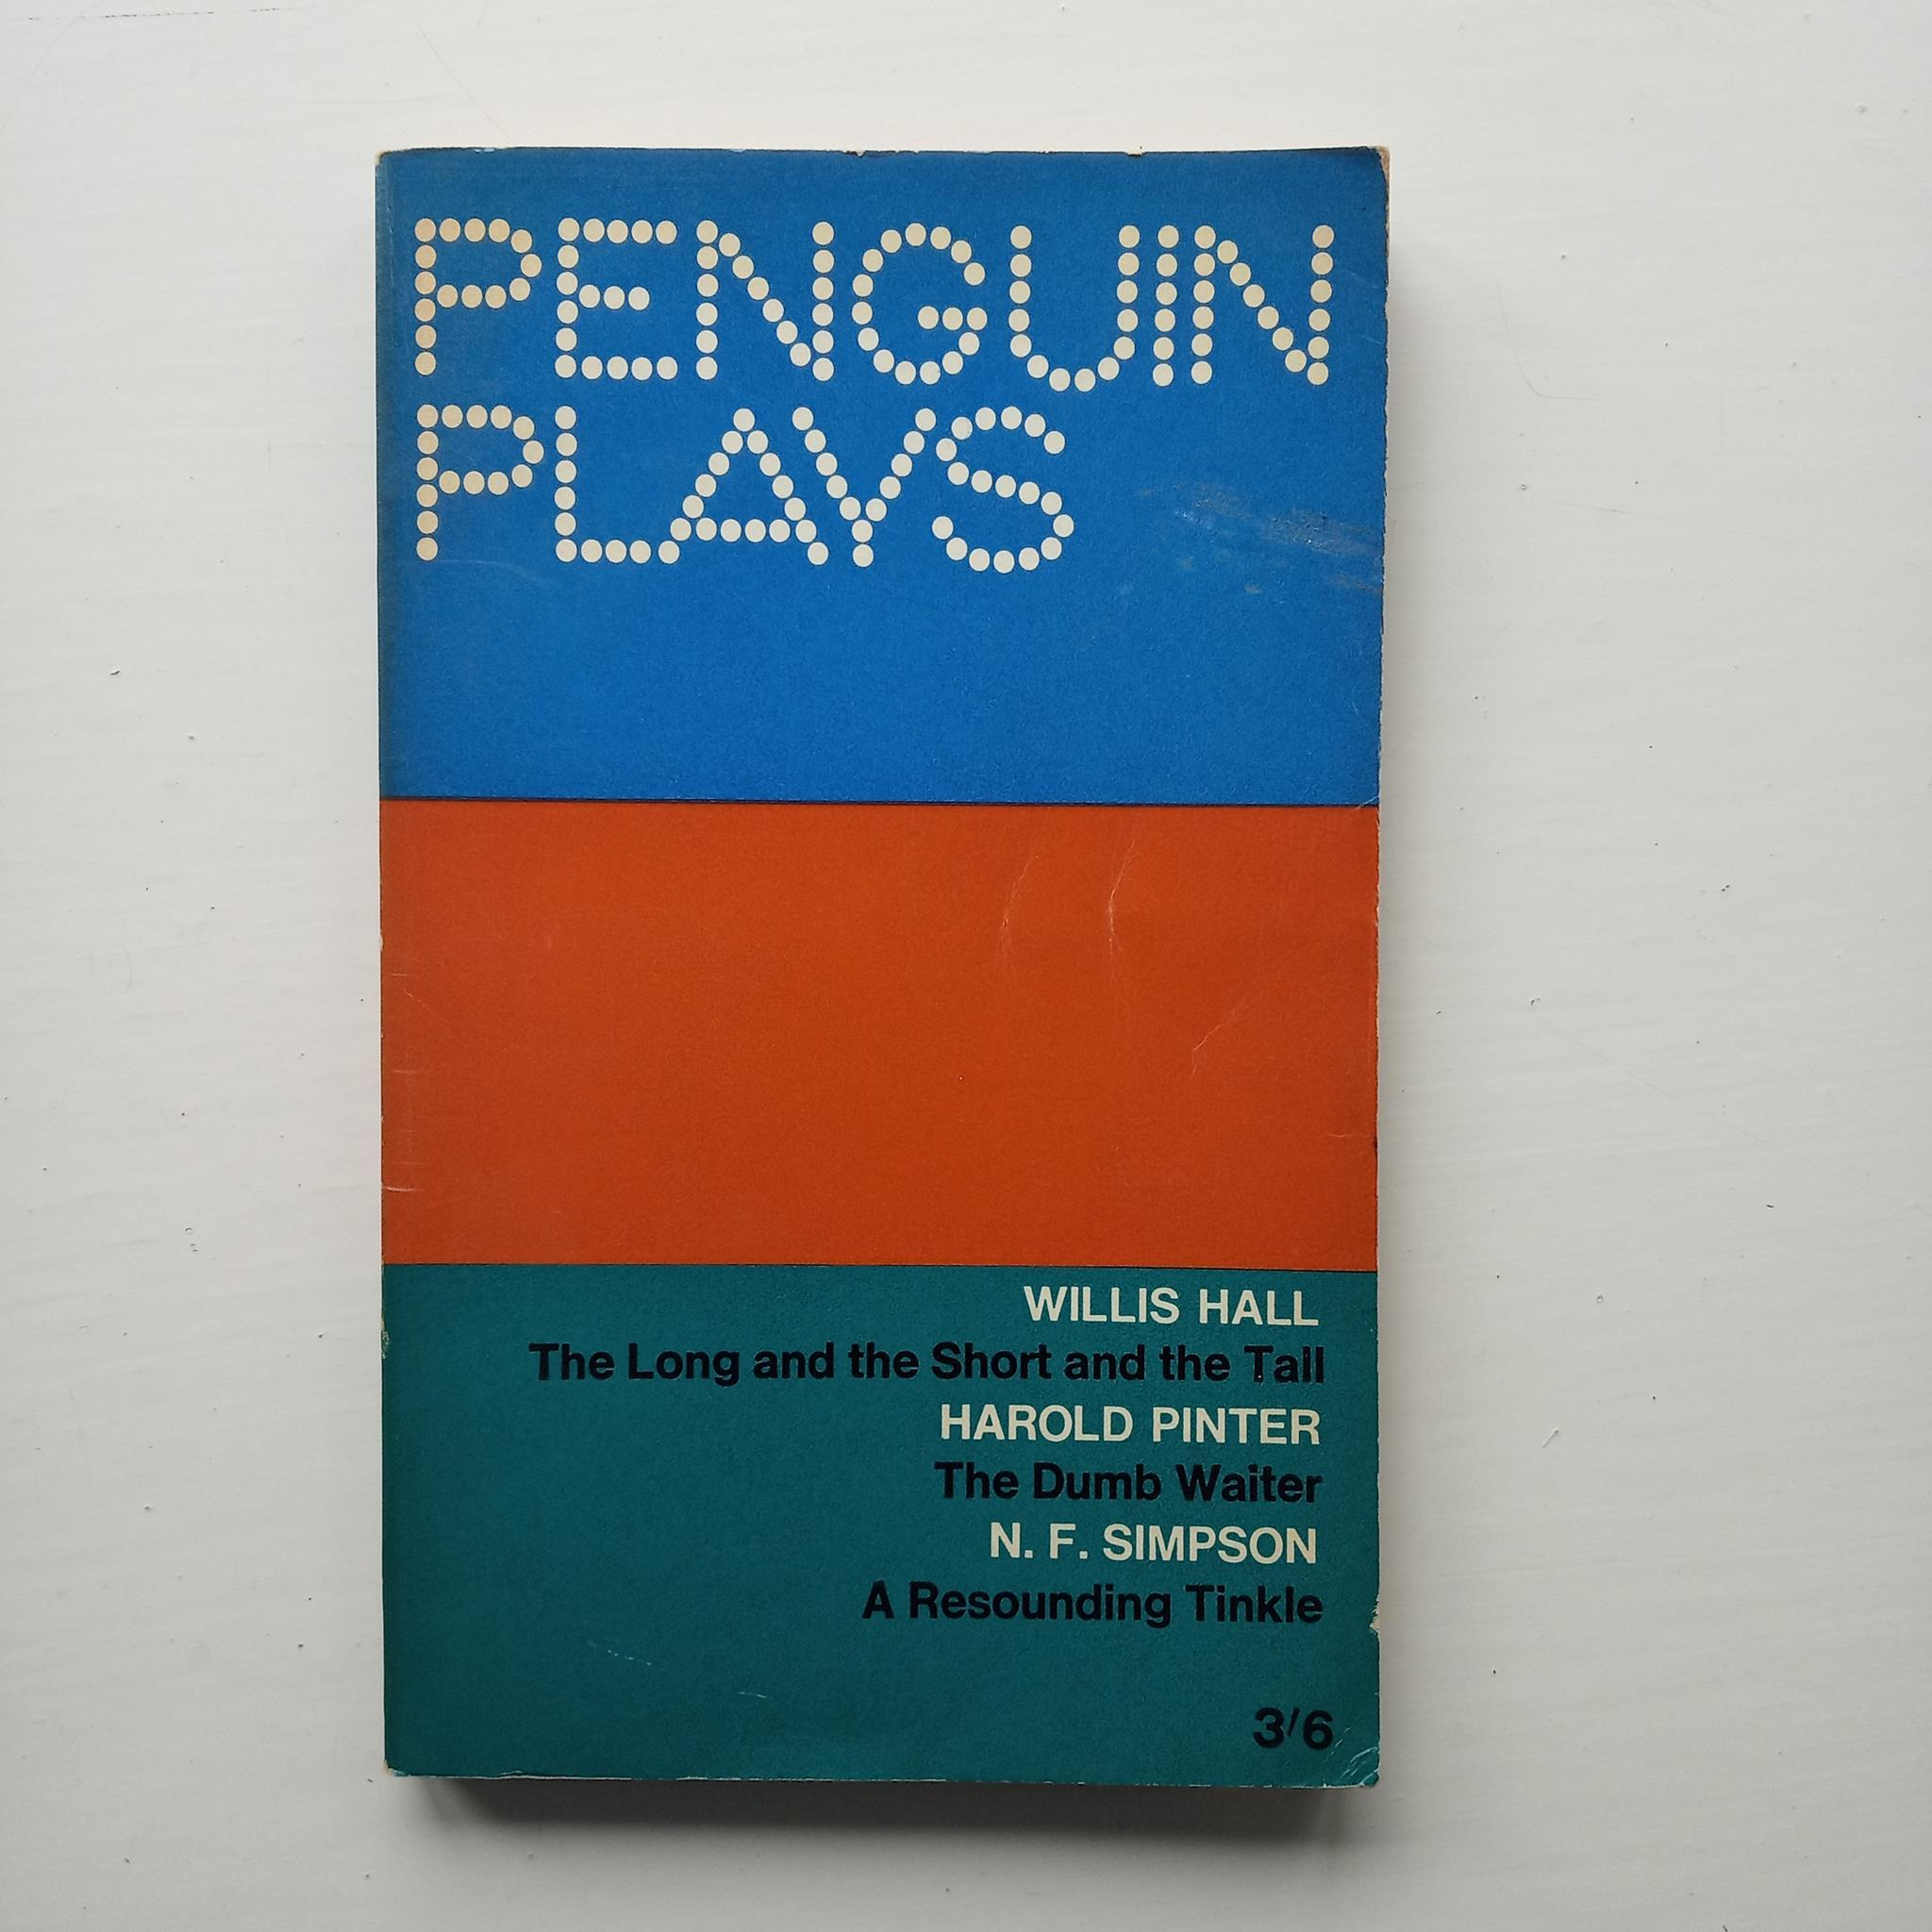 Penguin Plays: Hall, Pinter, Simpson by Willis Hall, Harold Pinter, N. F. Simpson